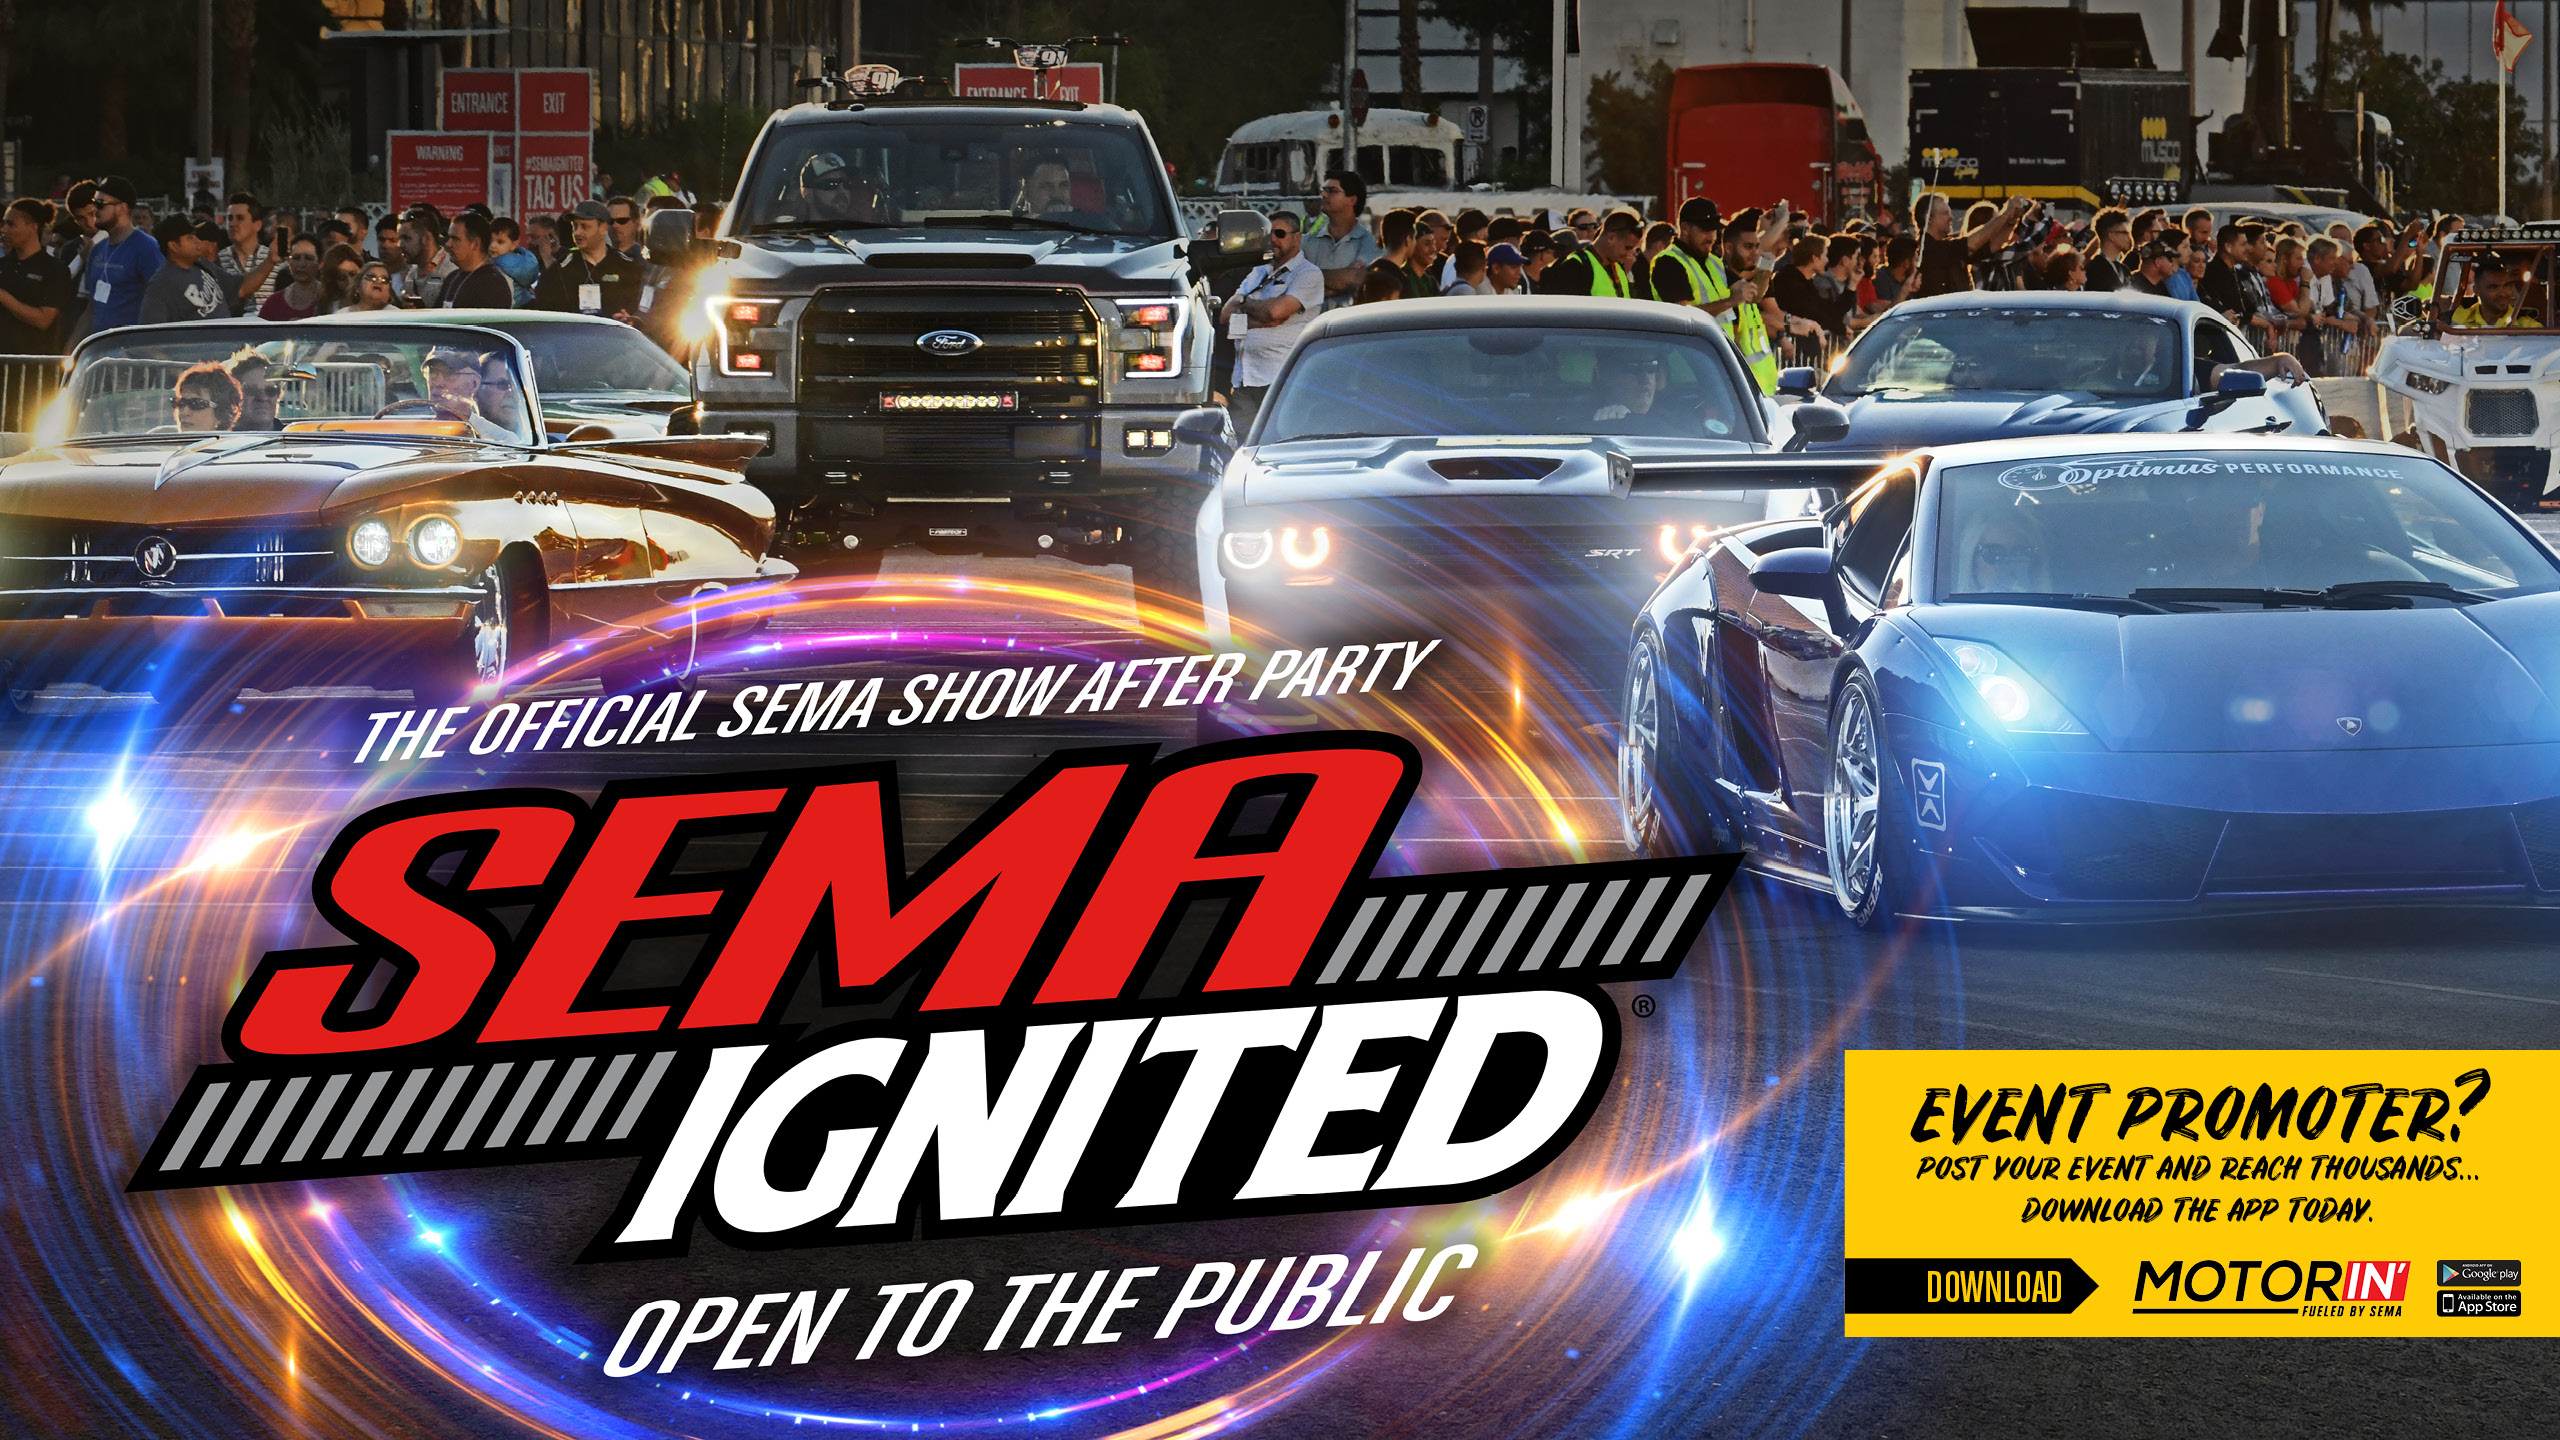 Sema Show 2020.Sema Ignited 2020 The Official Sema Show After Party